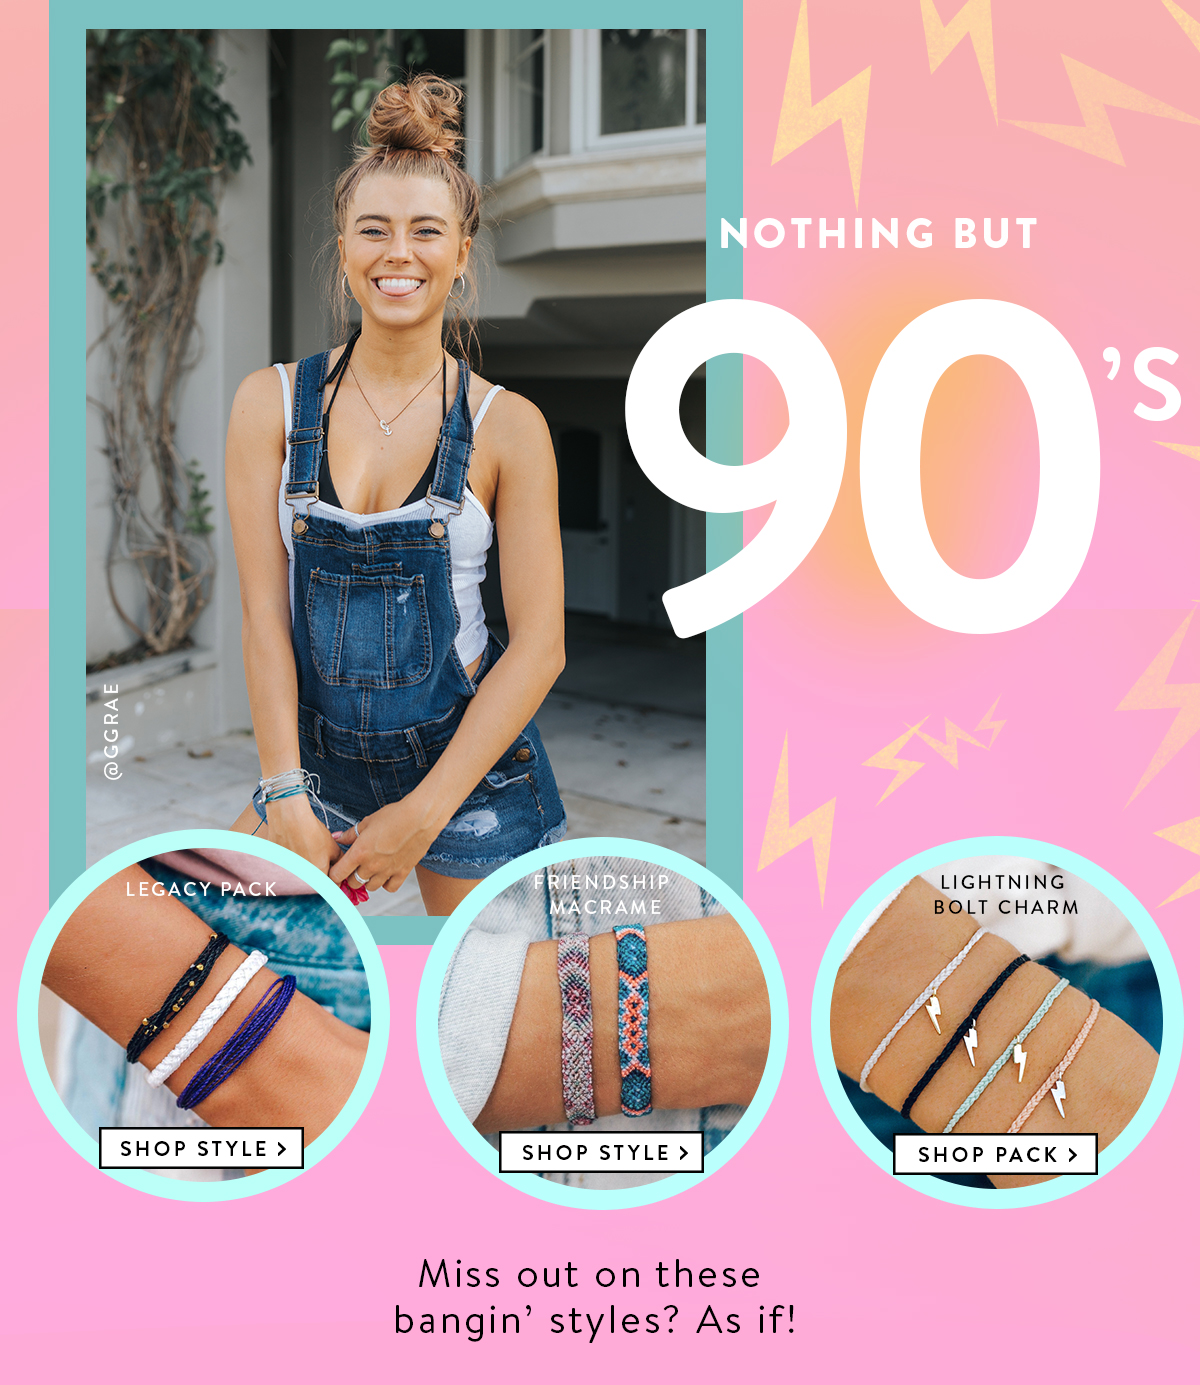 Nothing But 90s | SHOP STYLES >